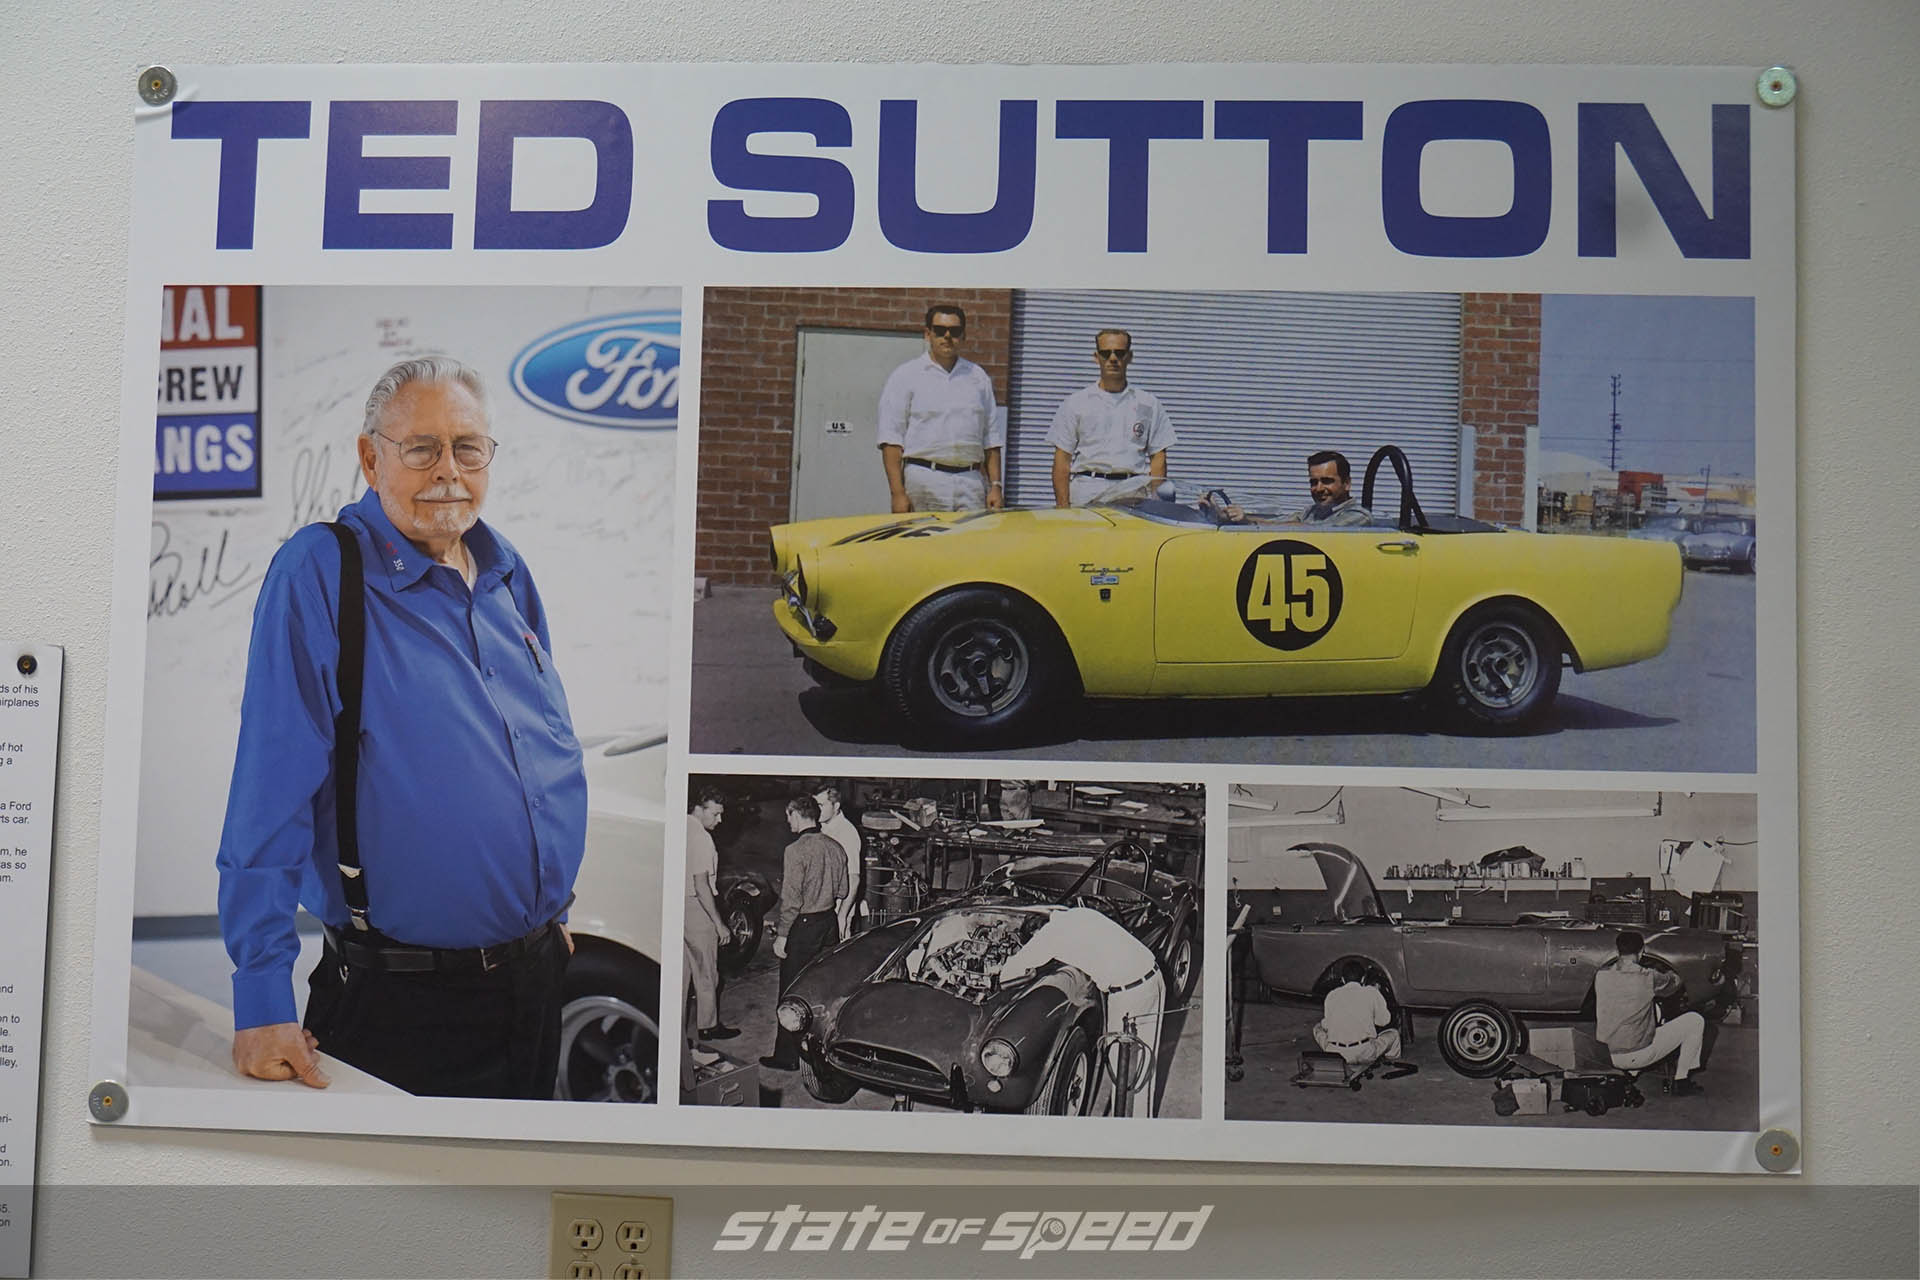 Poster honoring Ted Sutton